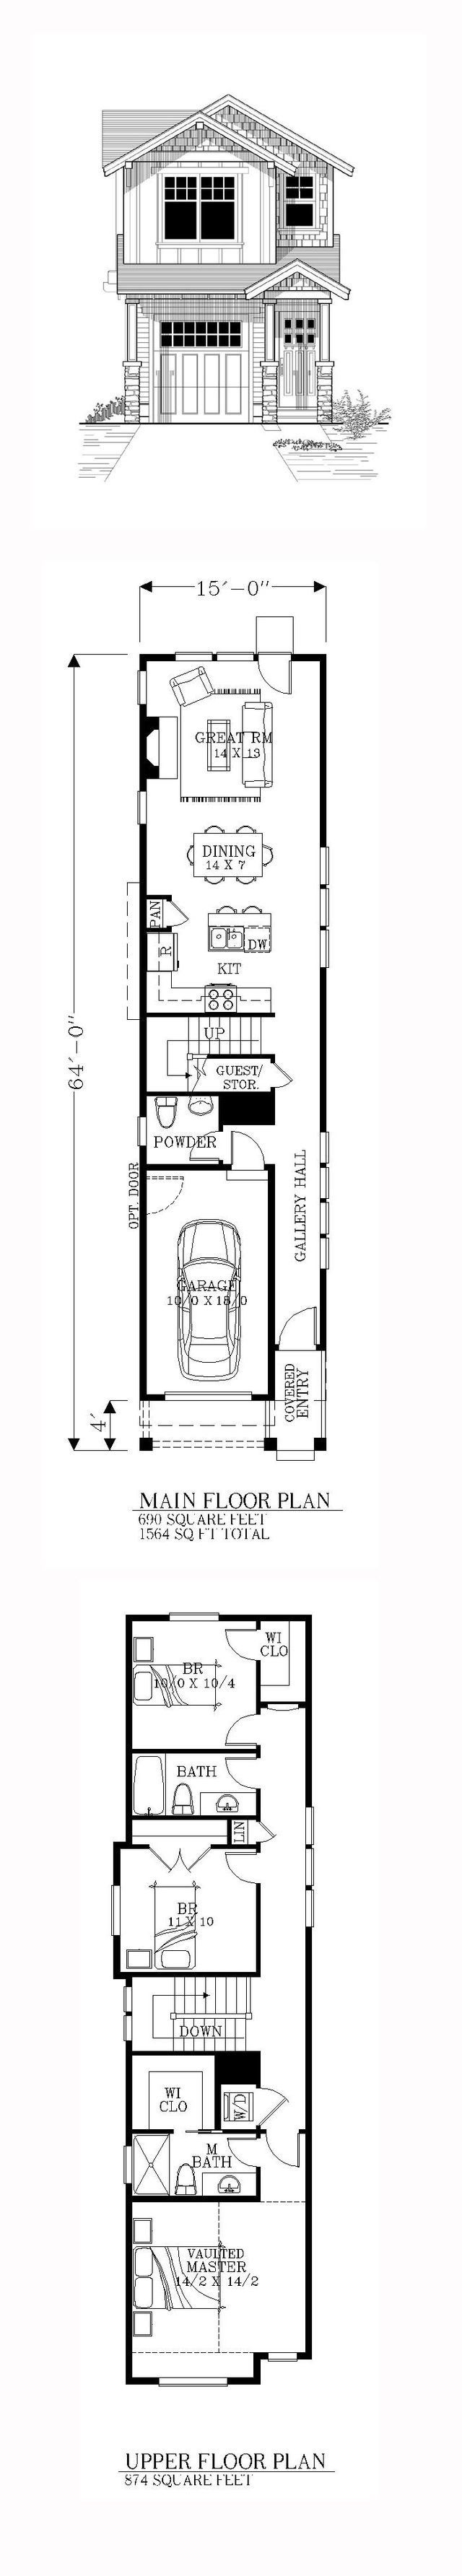 Large and narrow 3 bedroom house | architecture | Pinterest ... on narrow house elevations, narrow sink, narrow art, small lake lot plans, narrow house roof, narrow house layout, narrow lot house, narrow yard landscaping ideas, narrow cabinets, framing plans, narrow kitchens, narrow home, narrow modern house, narrow beach house, narrow bedroom, narrow 3 story house, narrow doors, narrow house interior design, narrow windows, narrow garden,